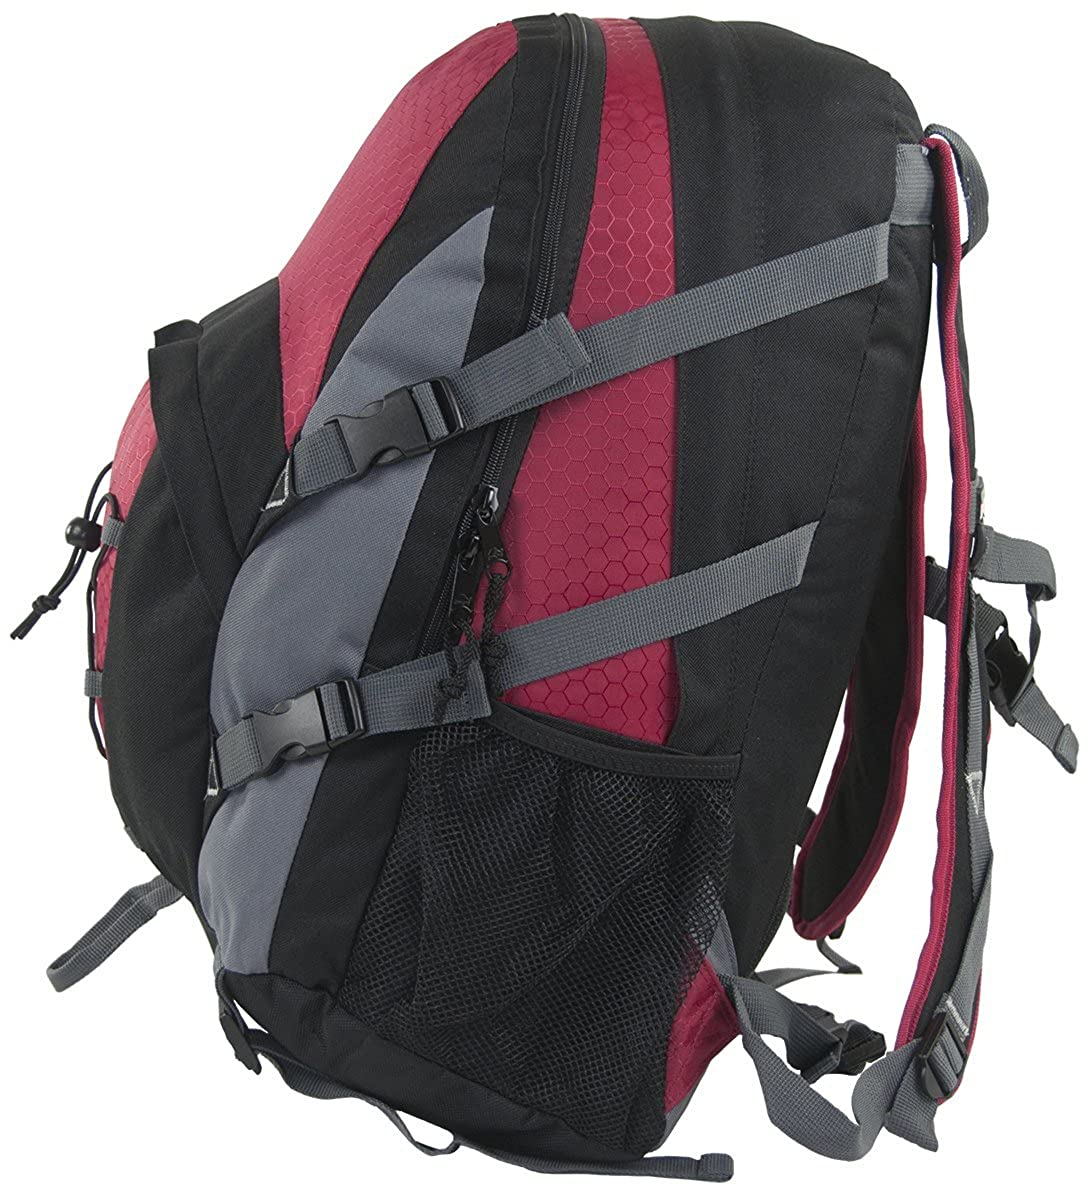 Large 22 Backpack Day pack Book bag Updated for 2015 21013 Olympica By Amaro